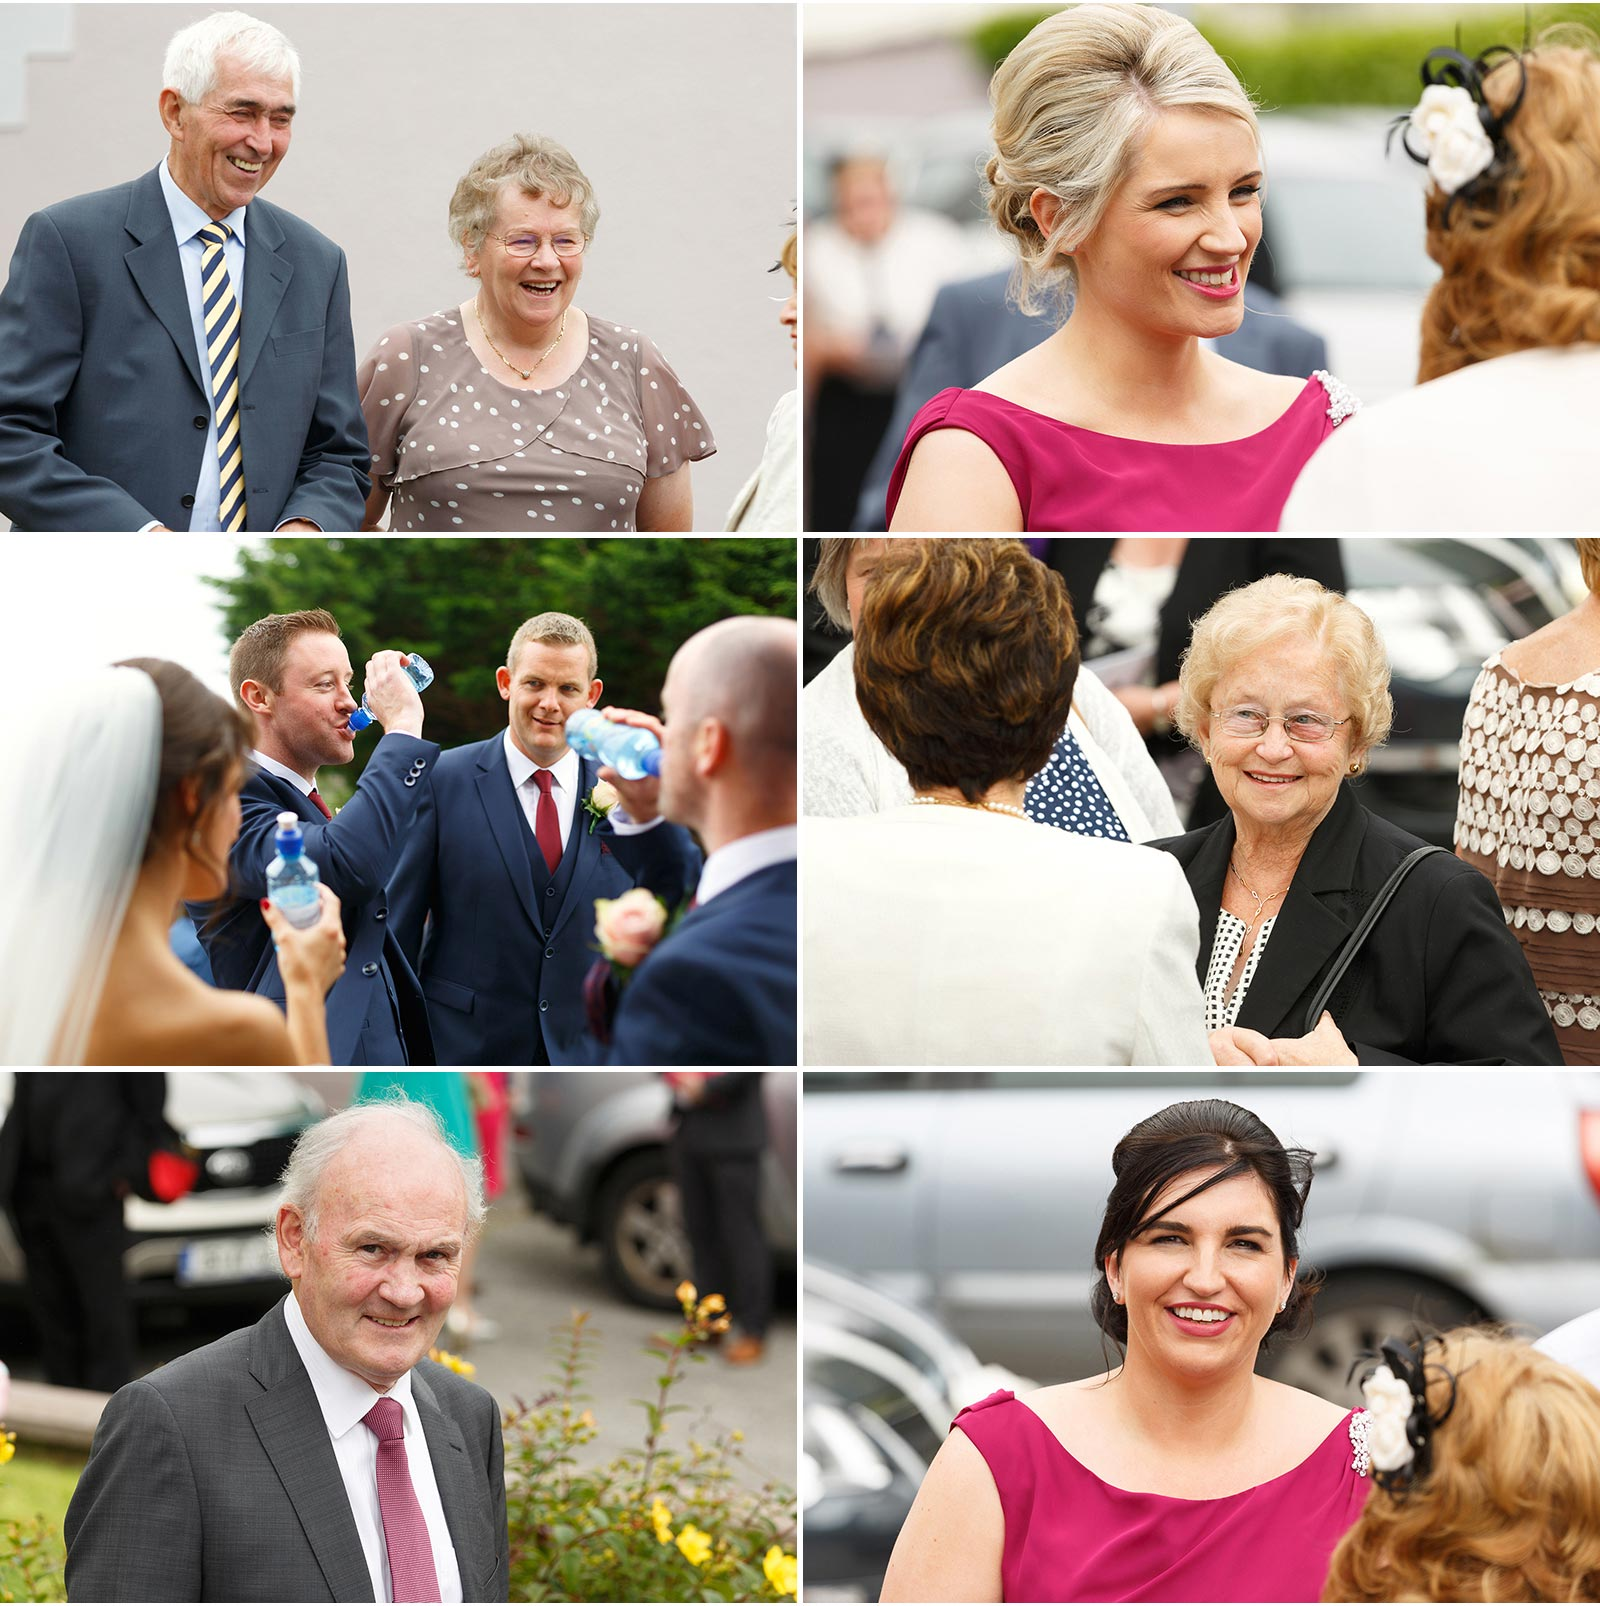 candid shots of wedding guests outside Kilflynn church in Kerry